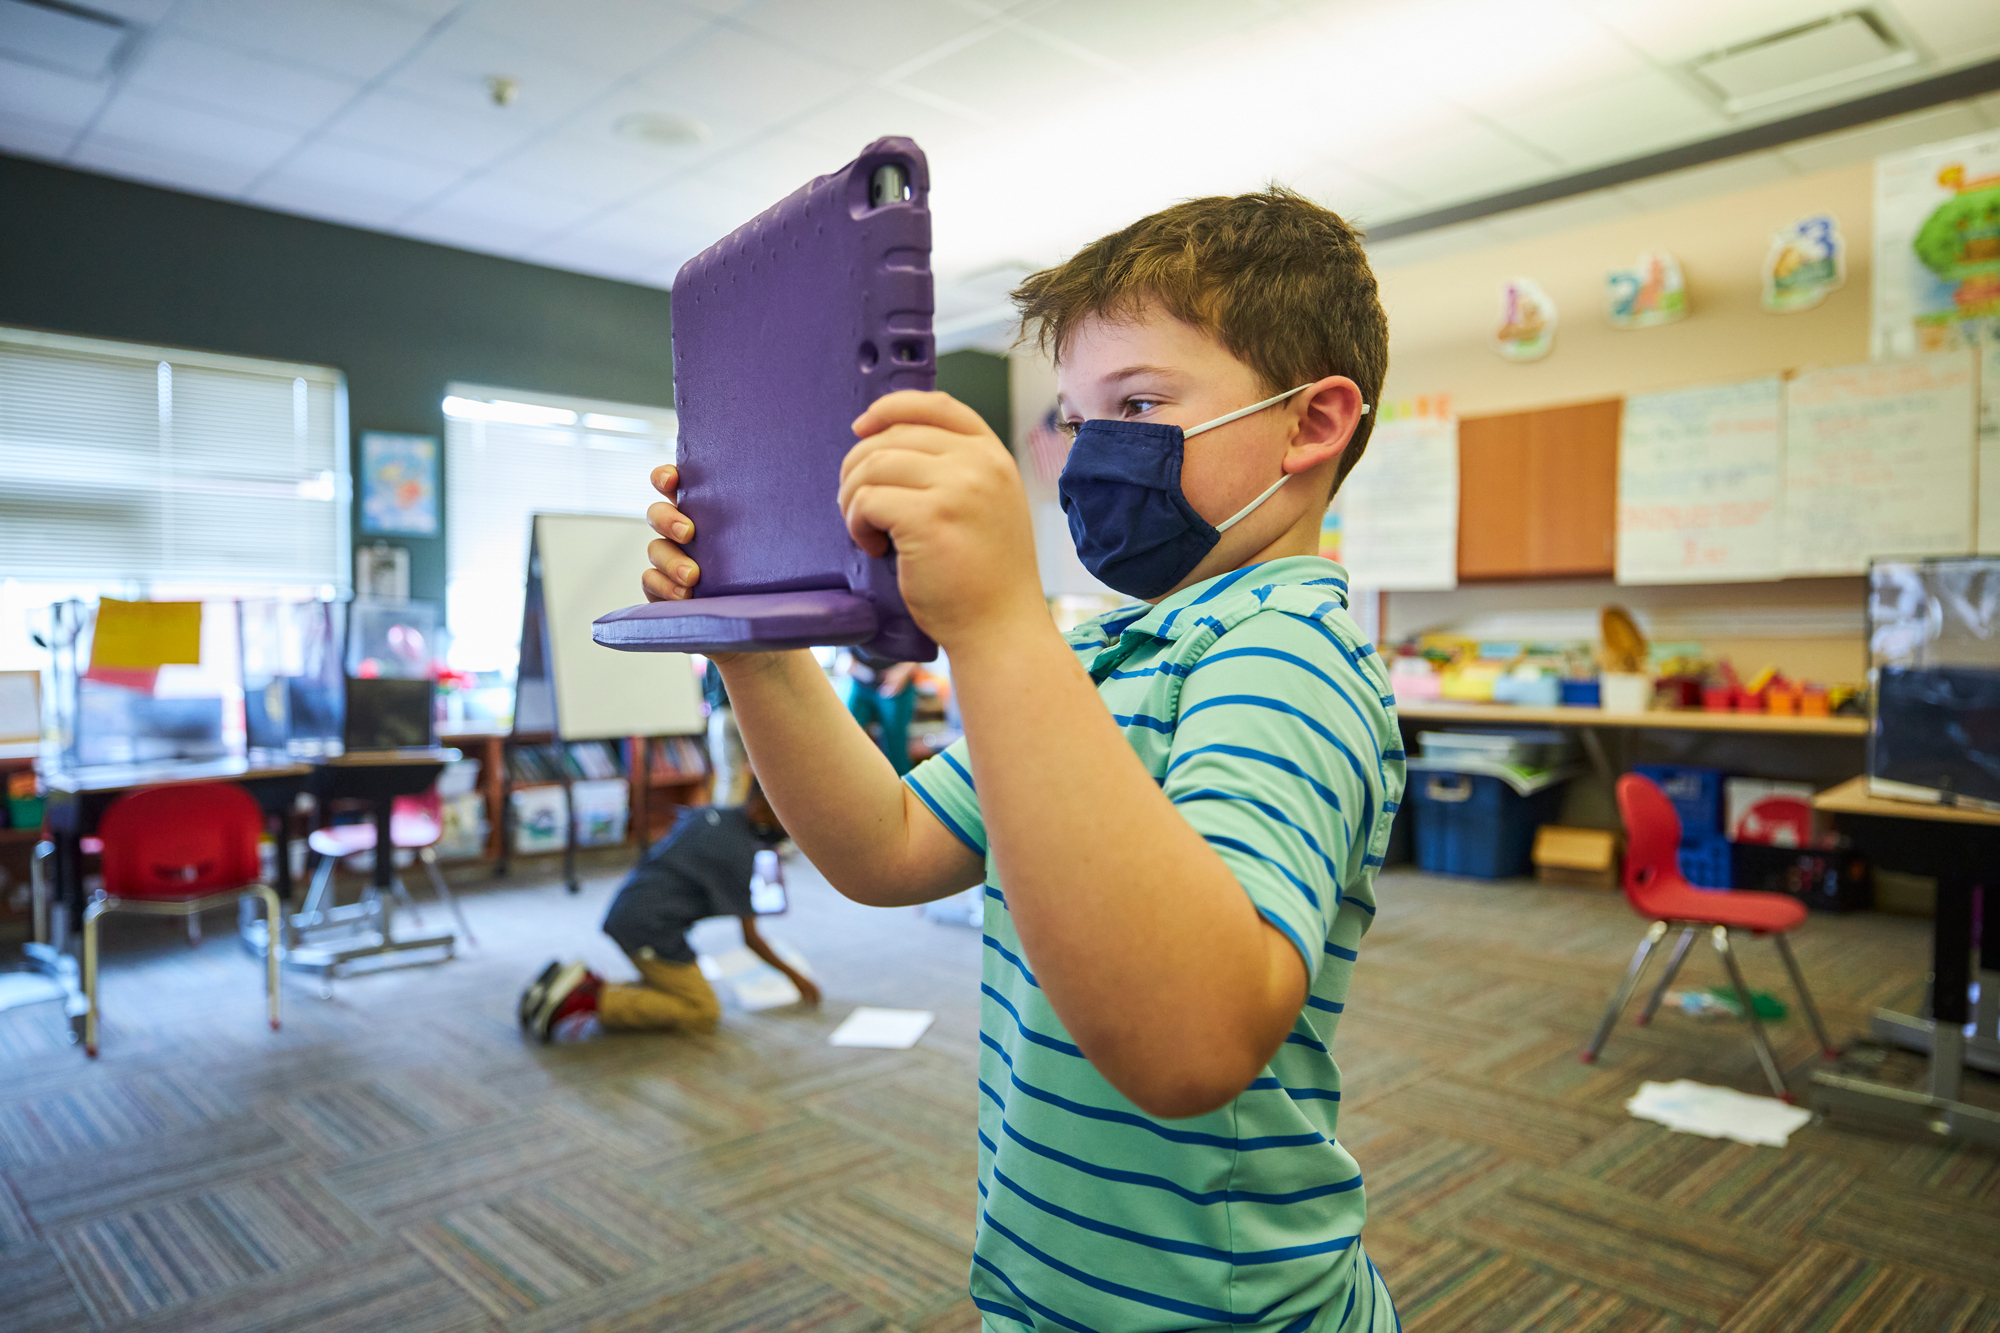 Schools pivot in face of pandemic, find partners to connect students to internet